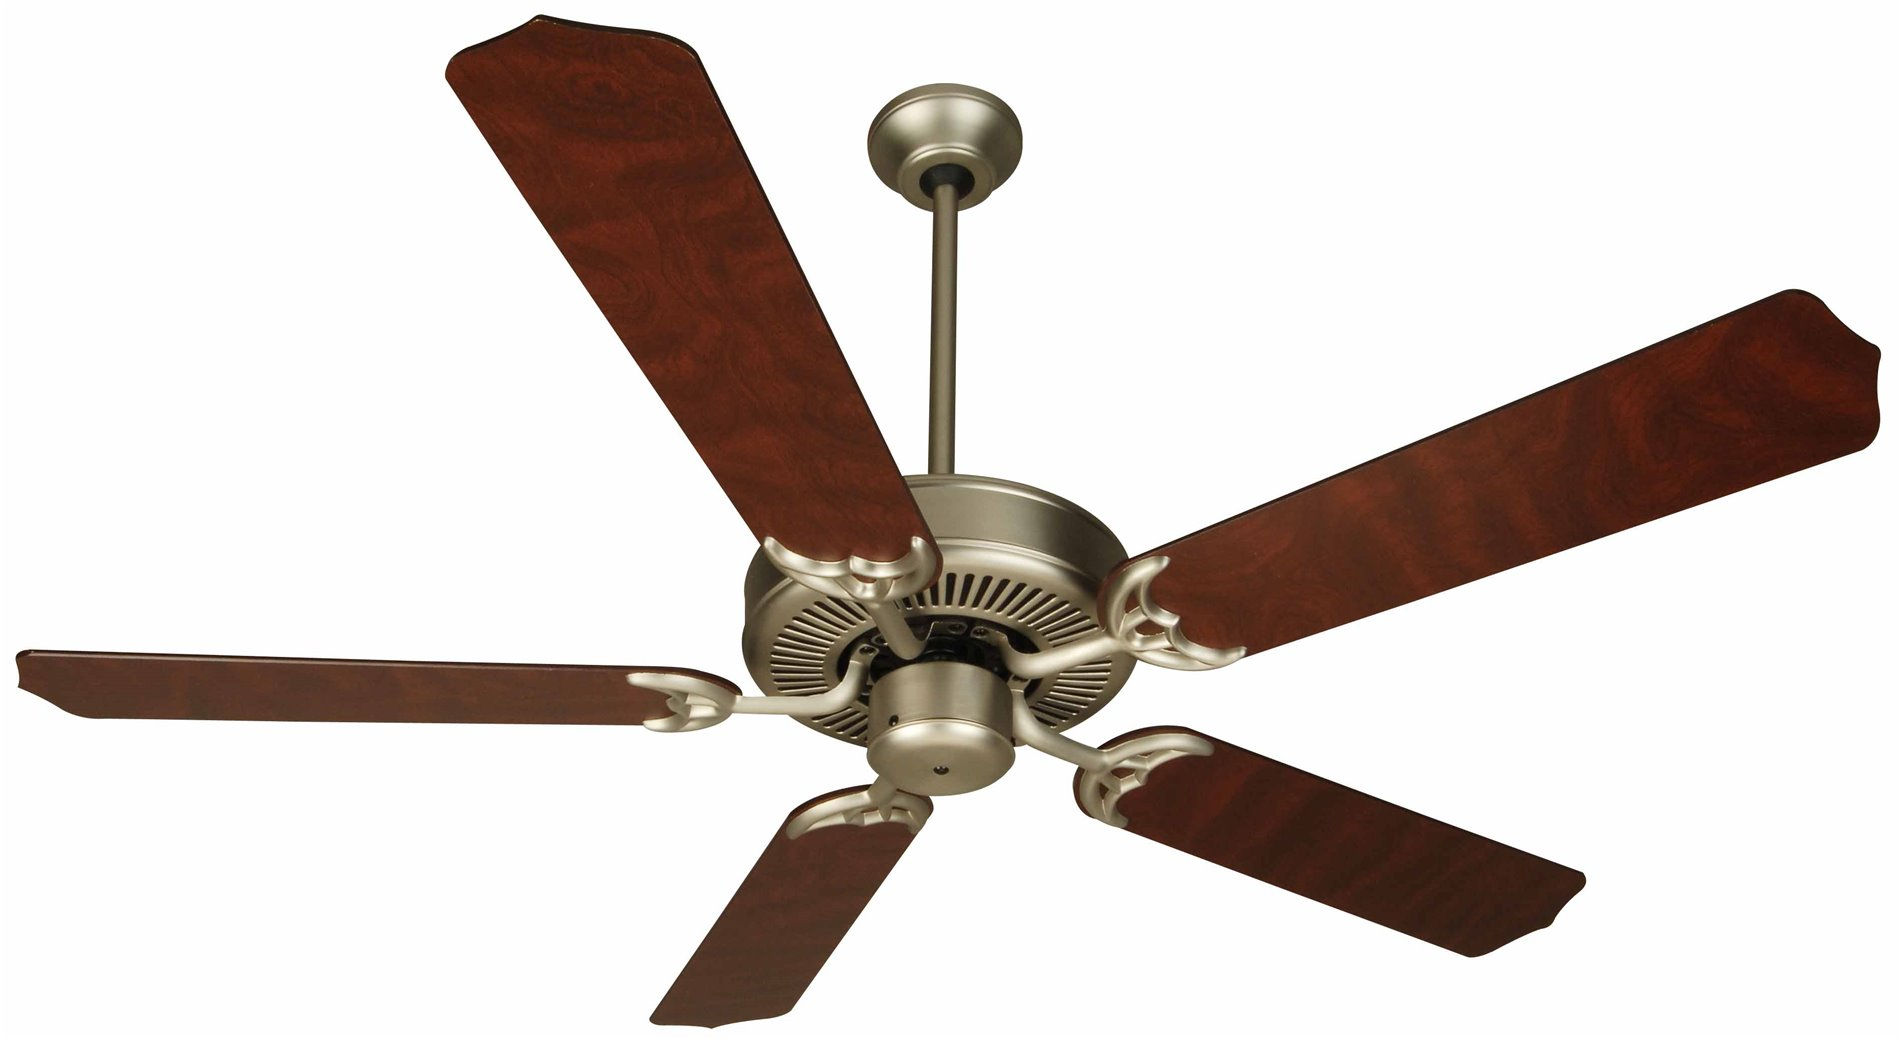 blades bronze ceiling modern and intertek wood with hardware fan on rubbed off white hunter dark